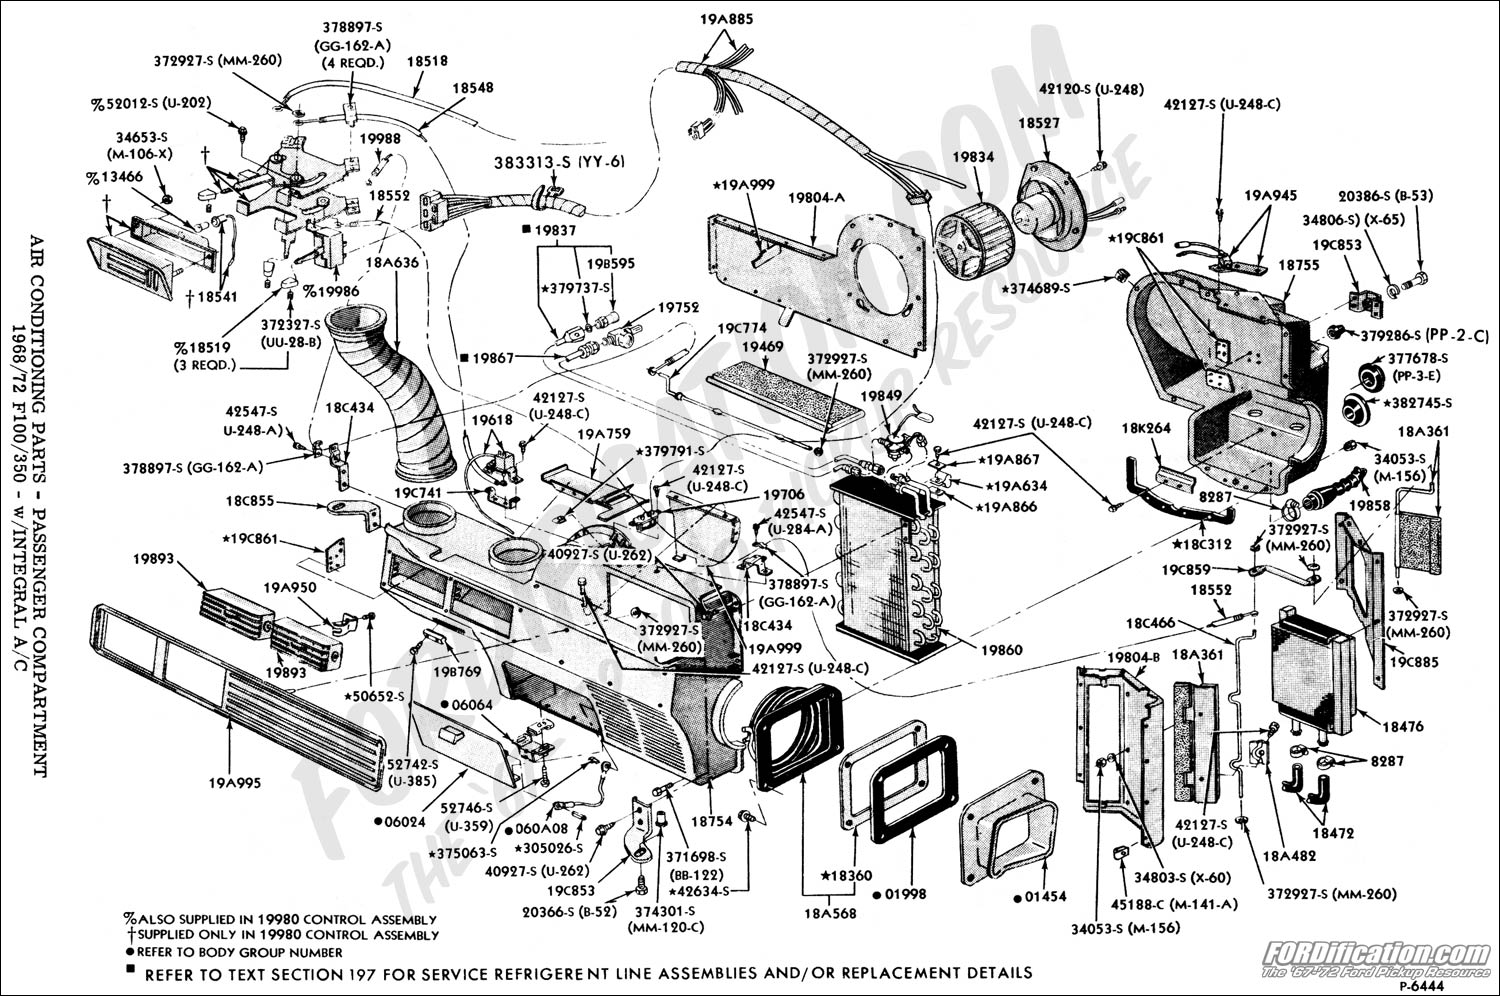 Ford Truck Part Numbers Air Conditioning Unit Factory Integral 1990 Mustang Wiring Diagram Chart